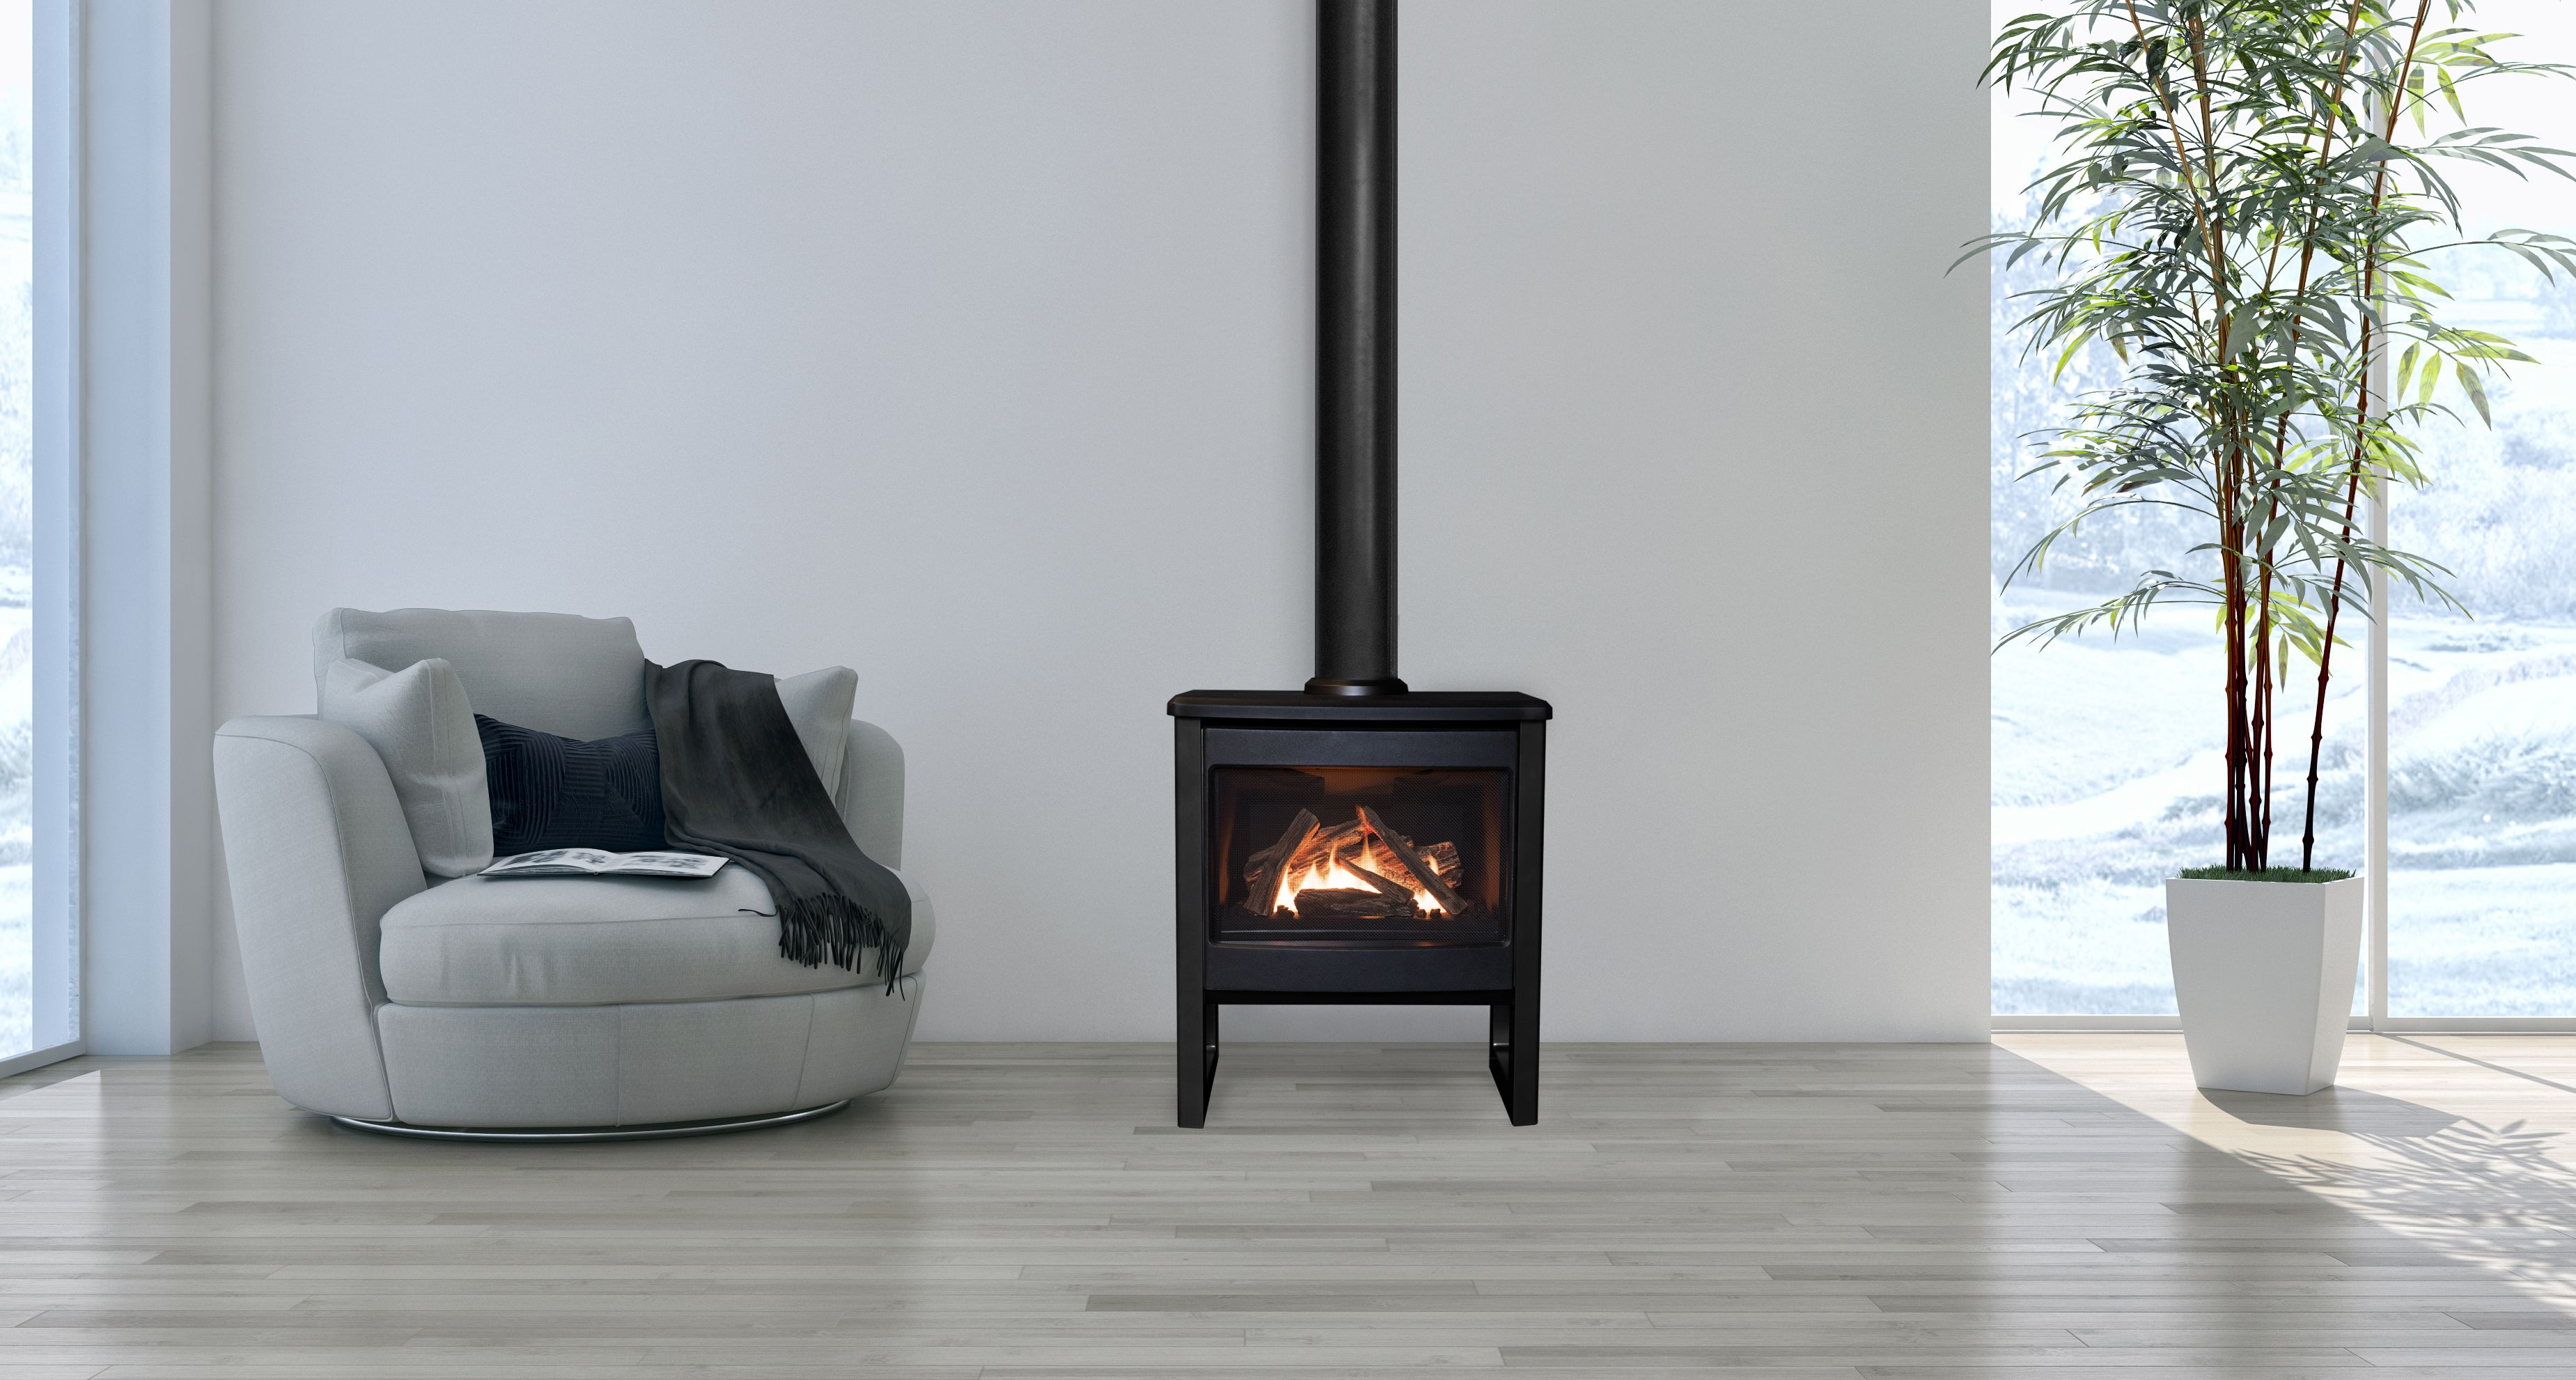 Valor Madrona Freestanding Fireplace Wood Burning Stoves Living Room Gas Fire Stove